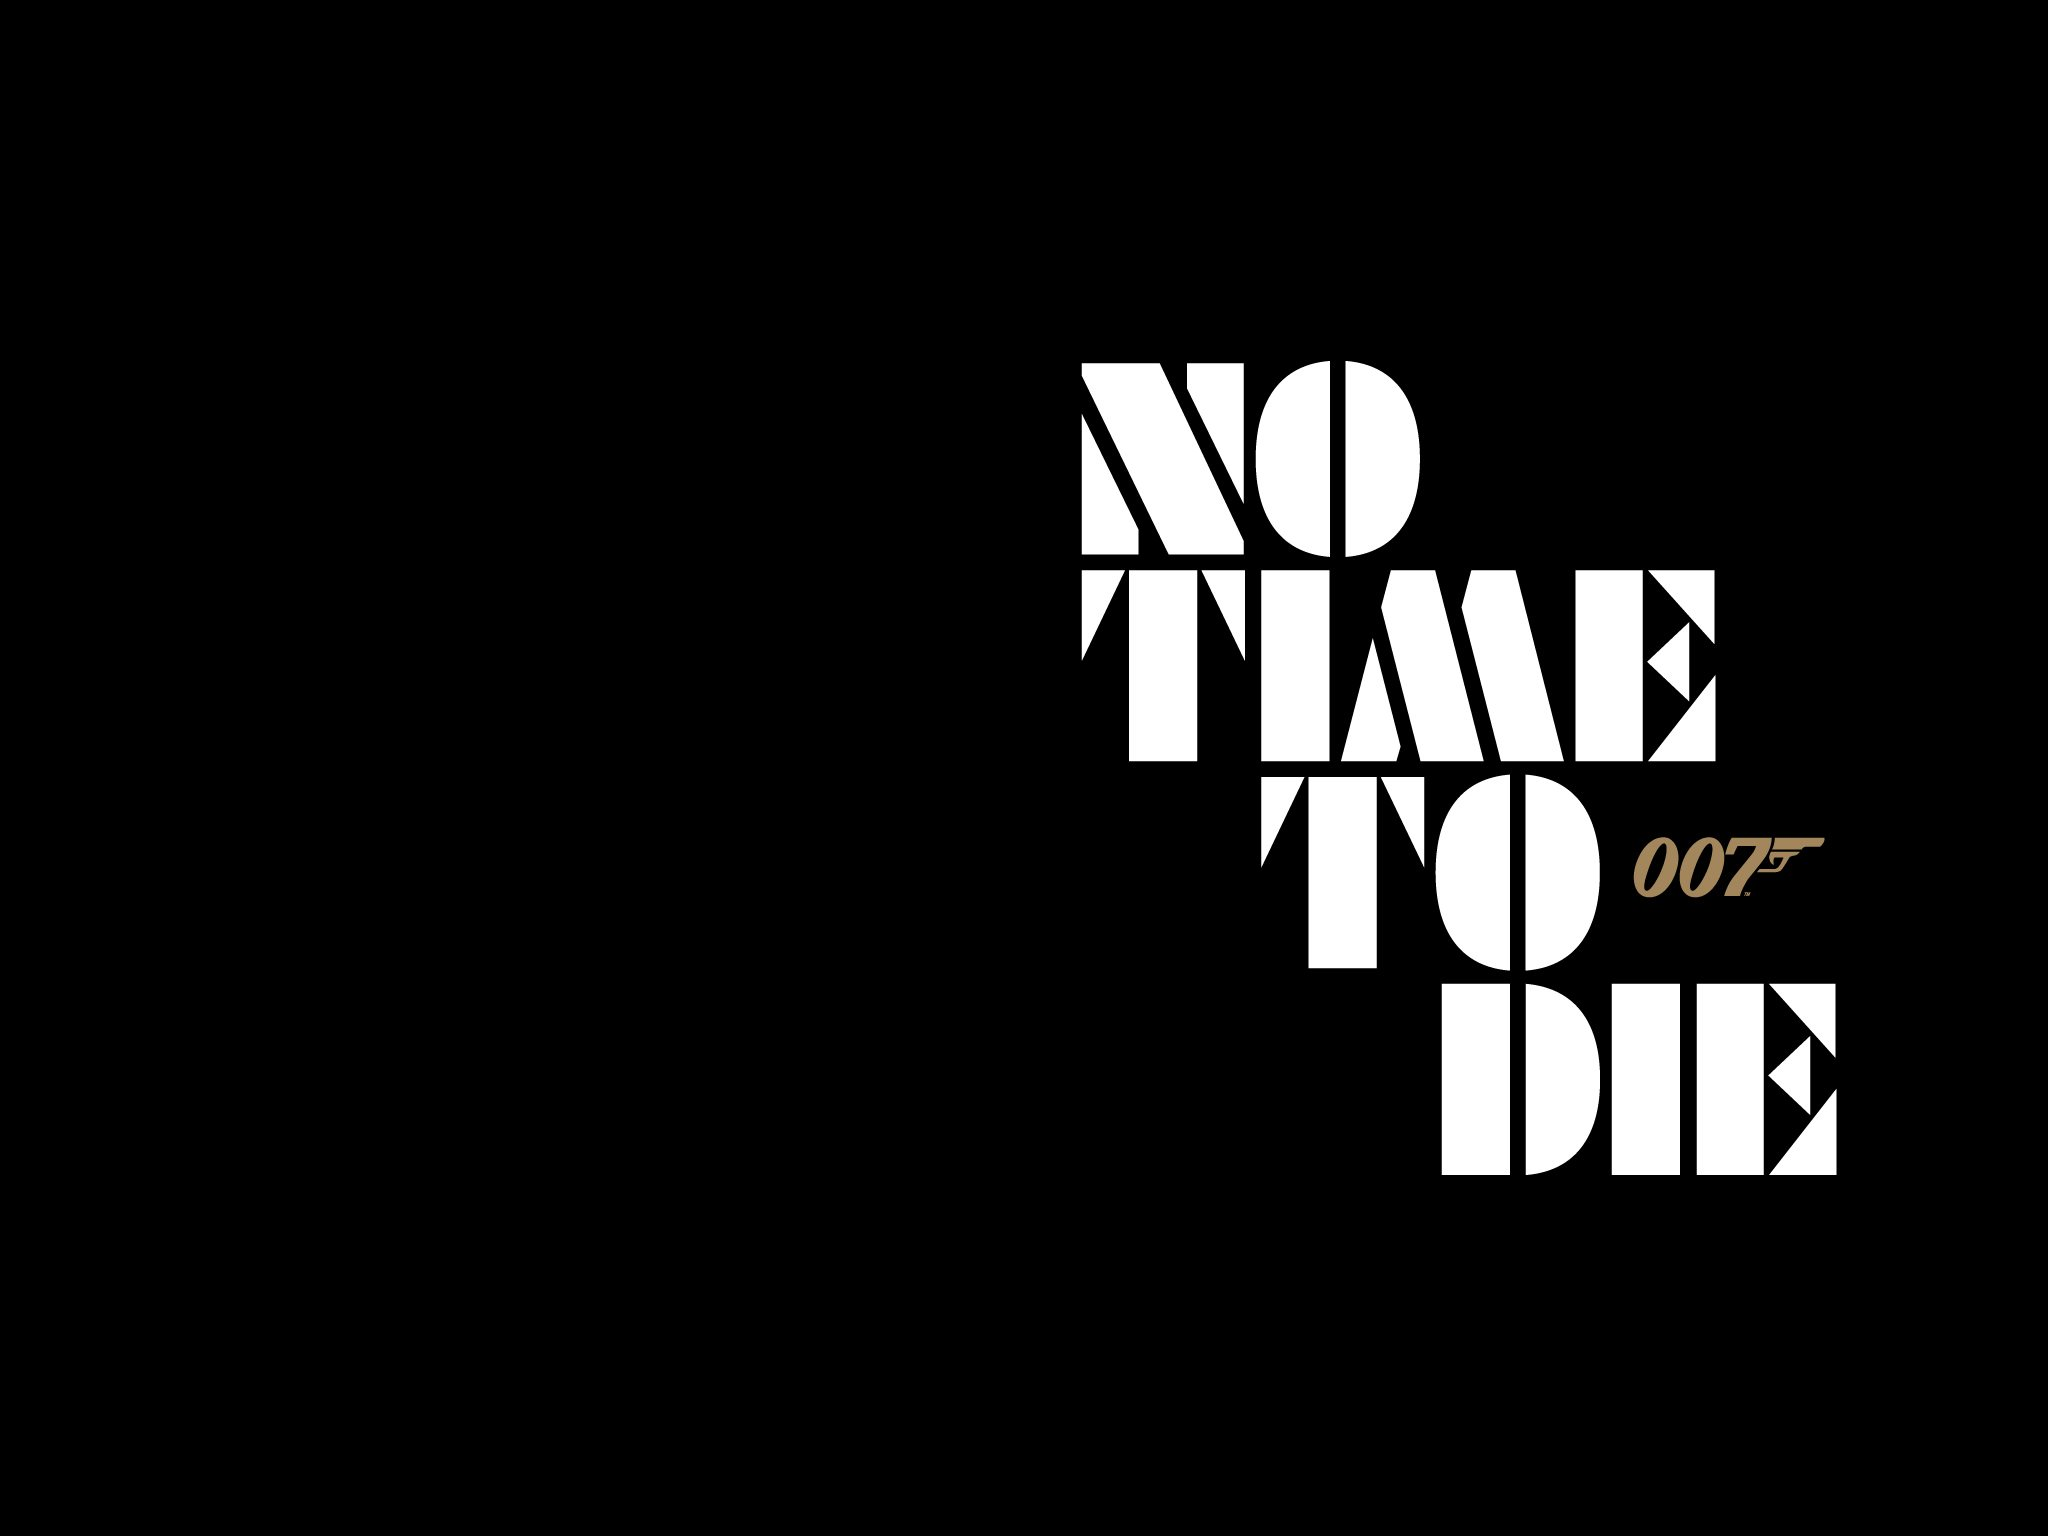 James Bond No Time To Die Card Black